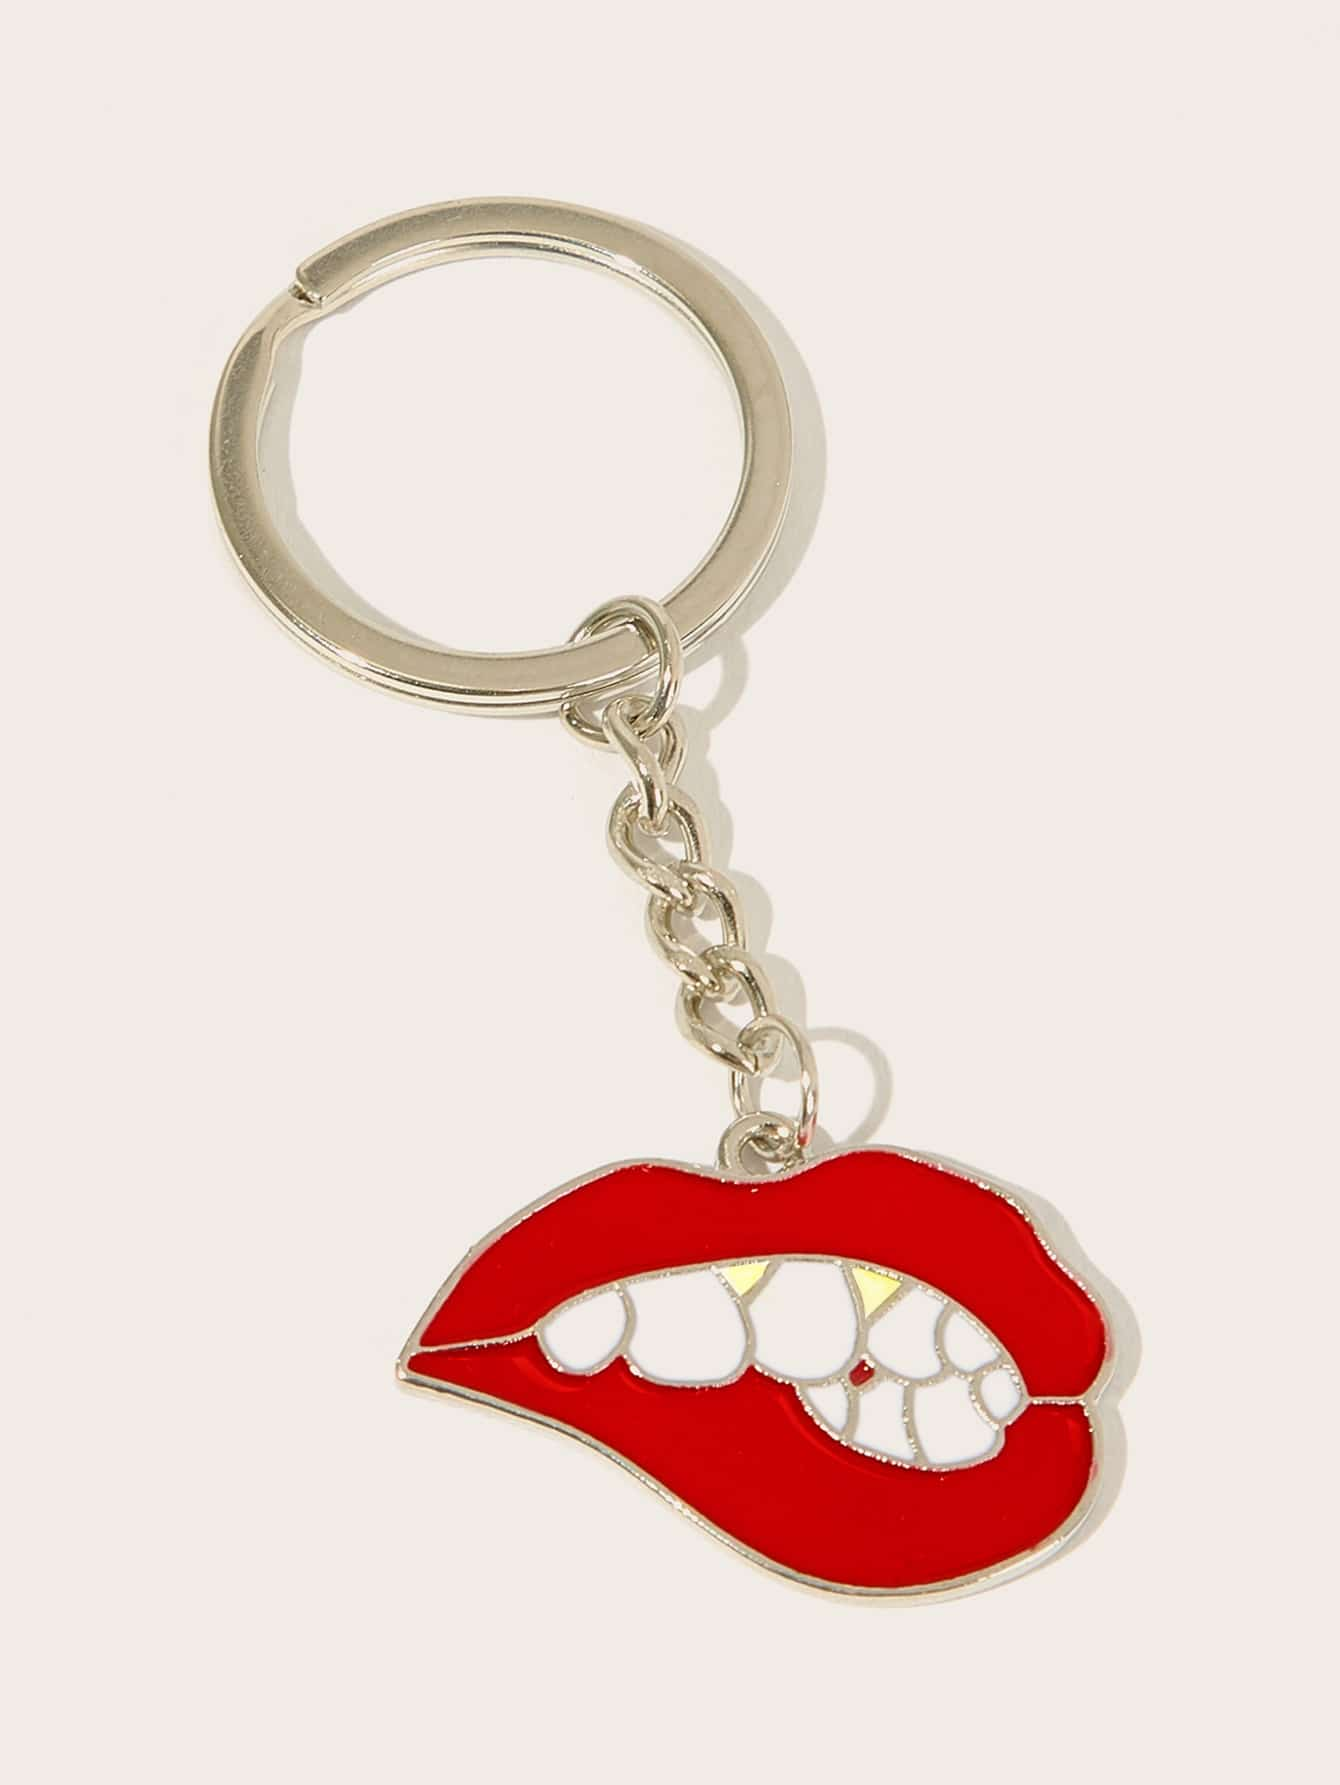 704765e662 Keychains. Compare prices in Etwish.co.uk products list